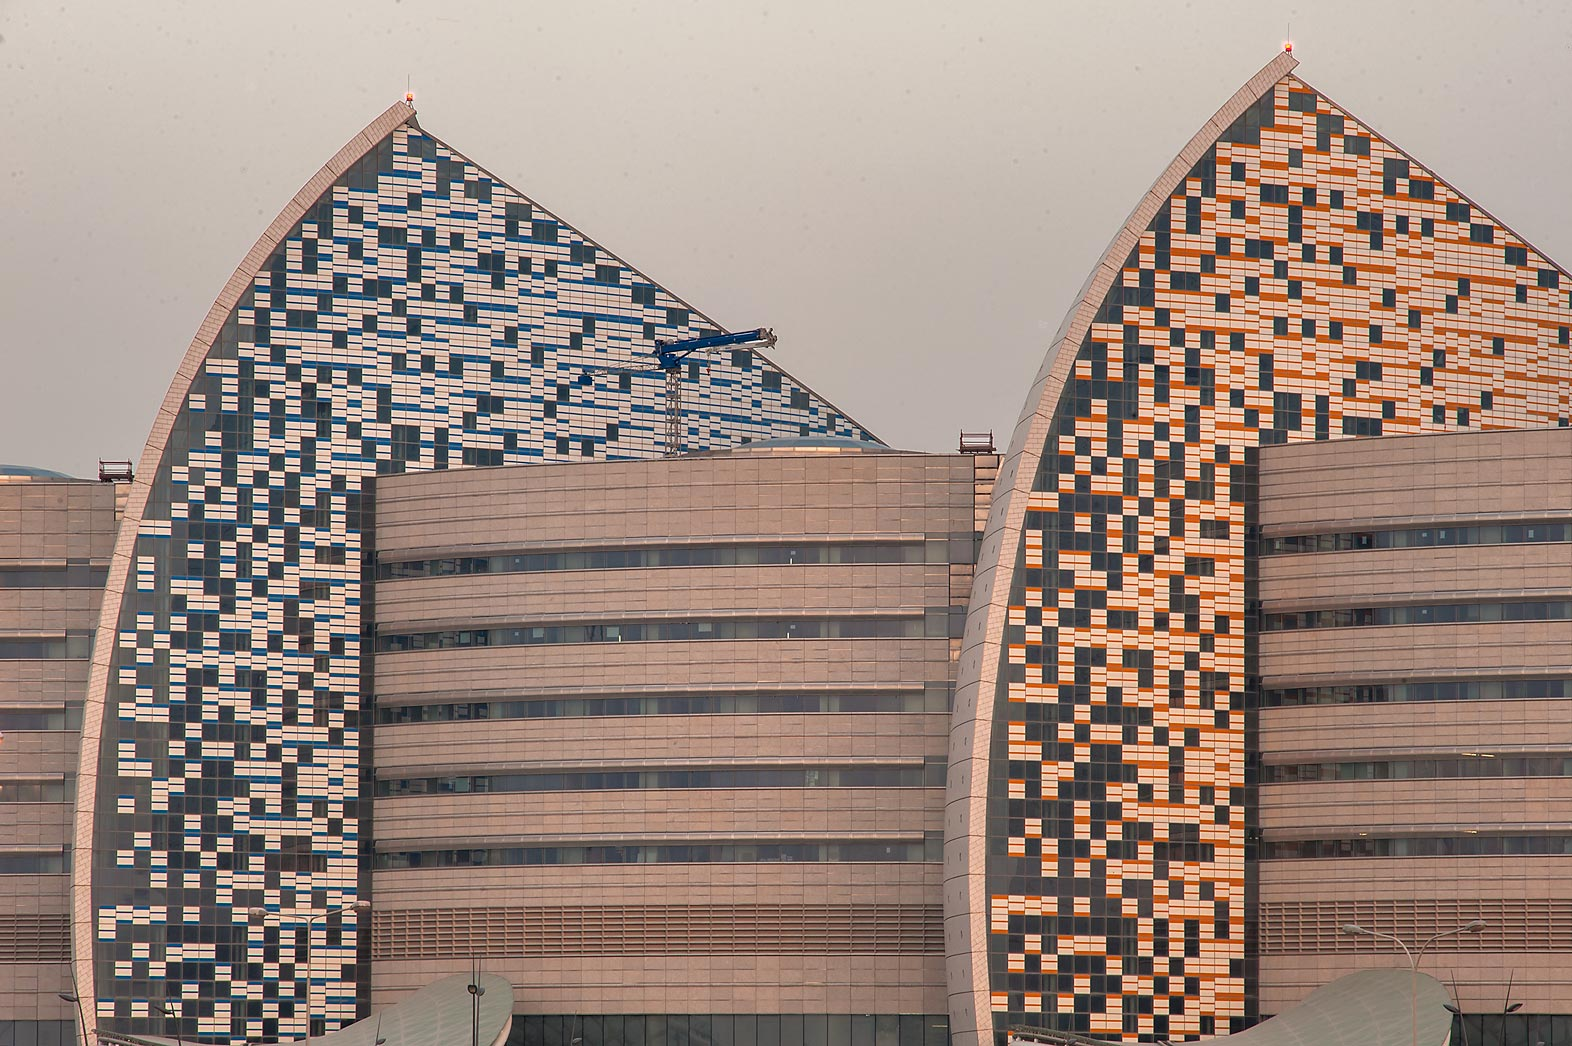 Deatails of panels of Sidra Medical and Research Center. Doha, Qatar